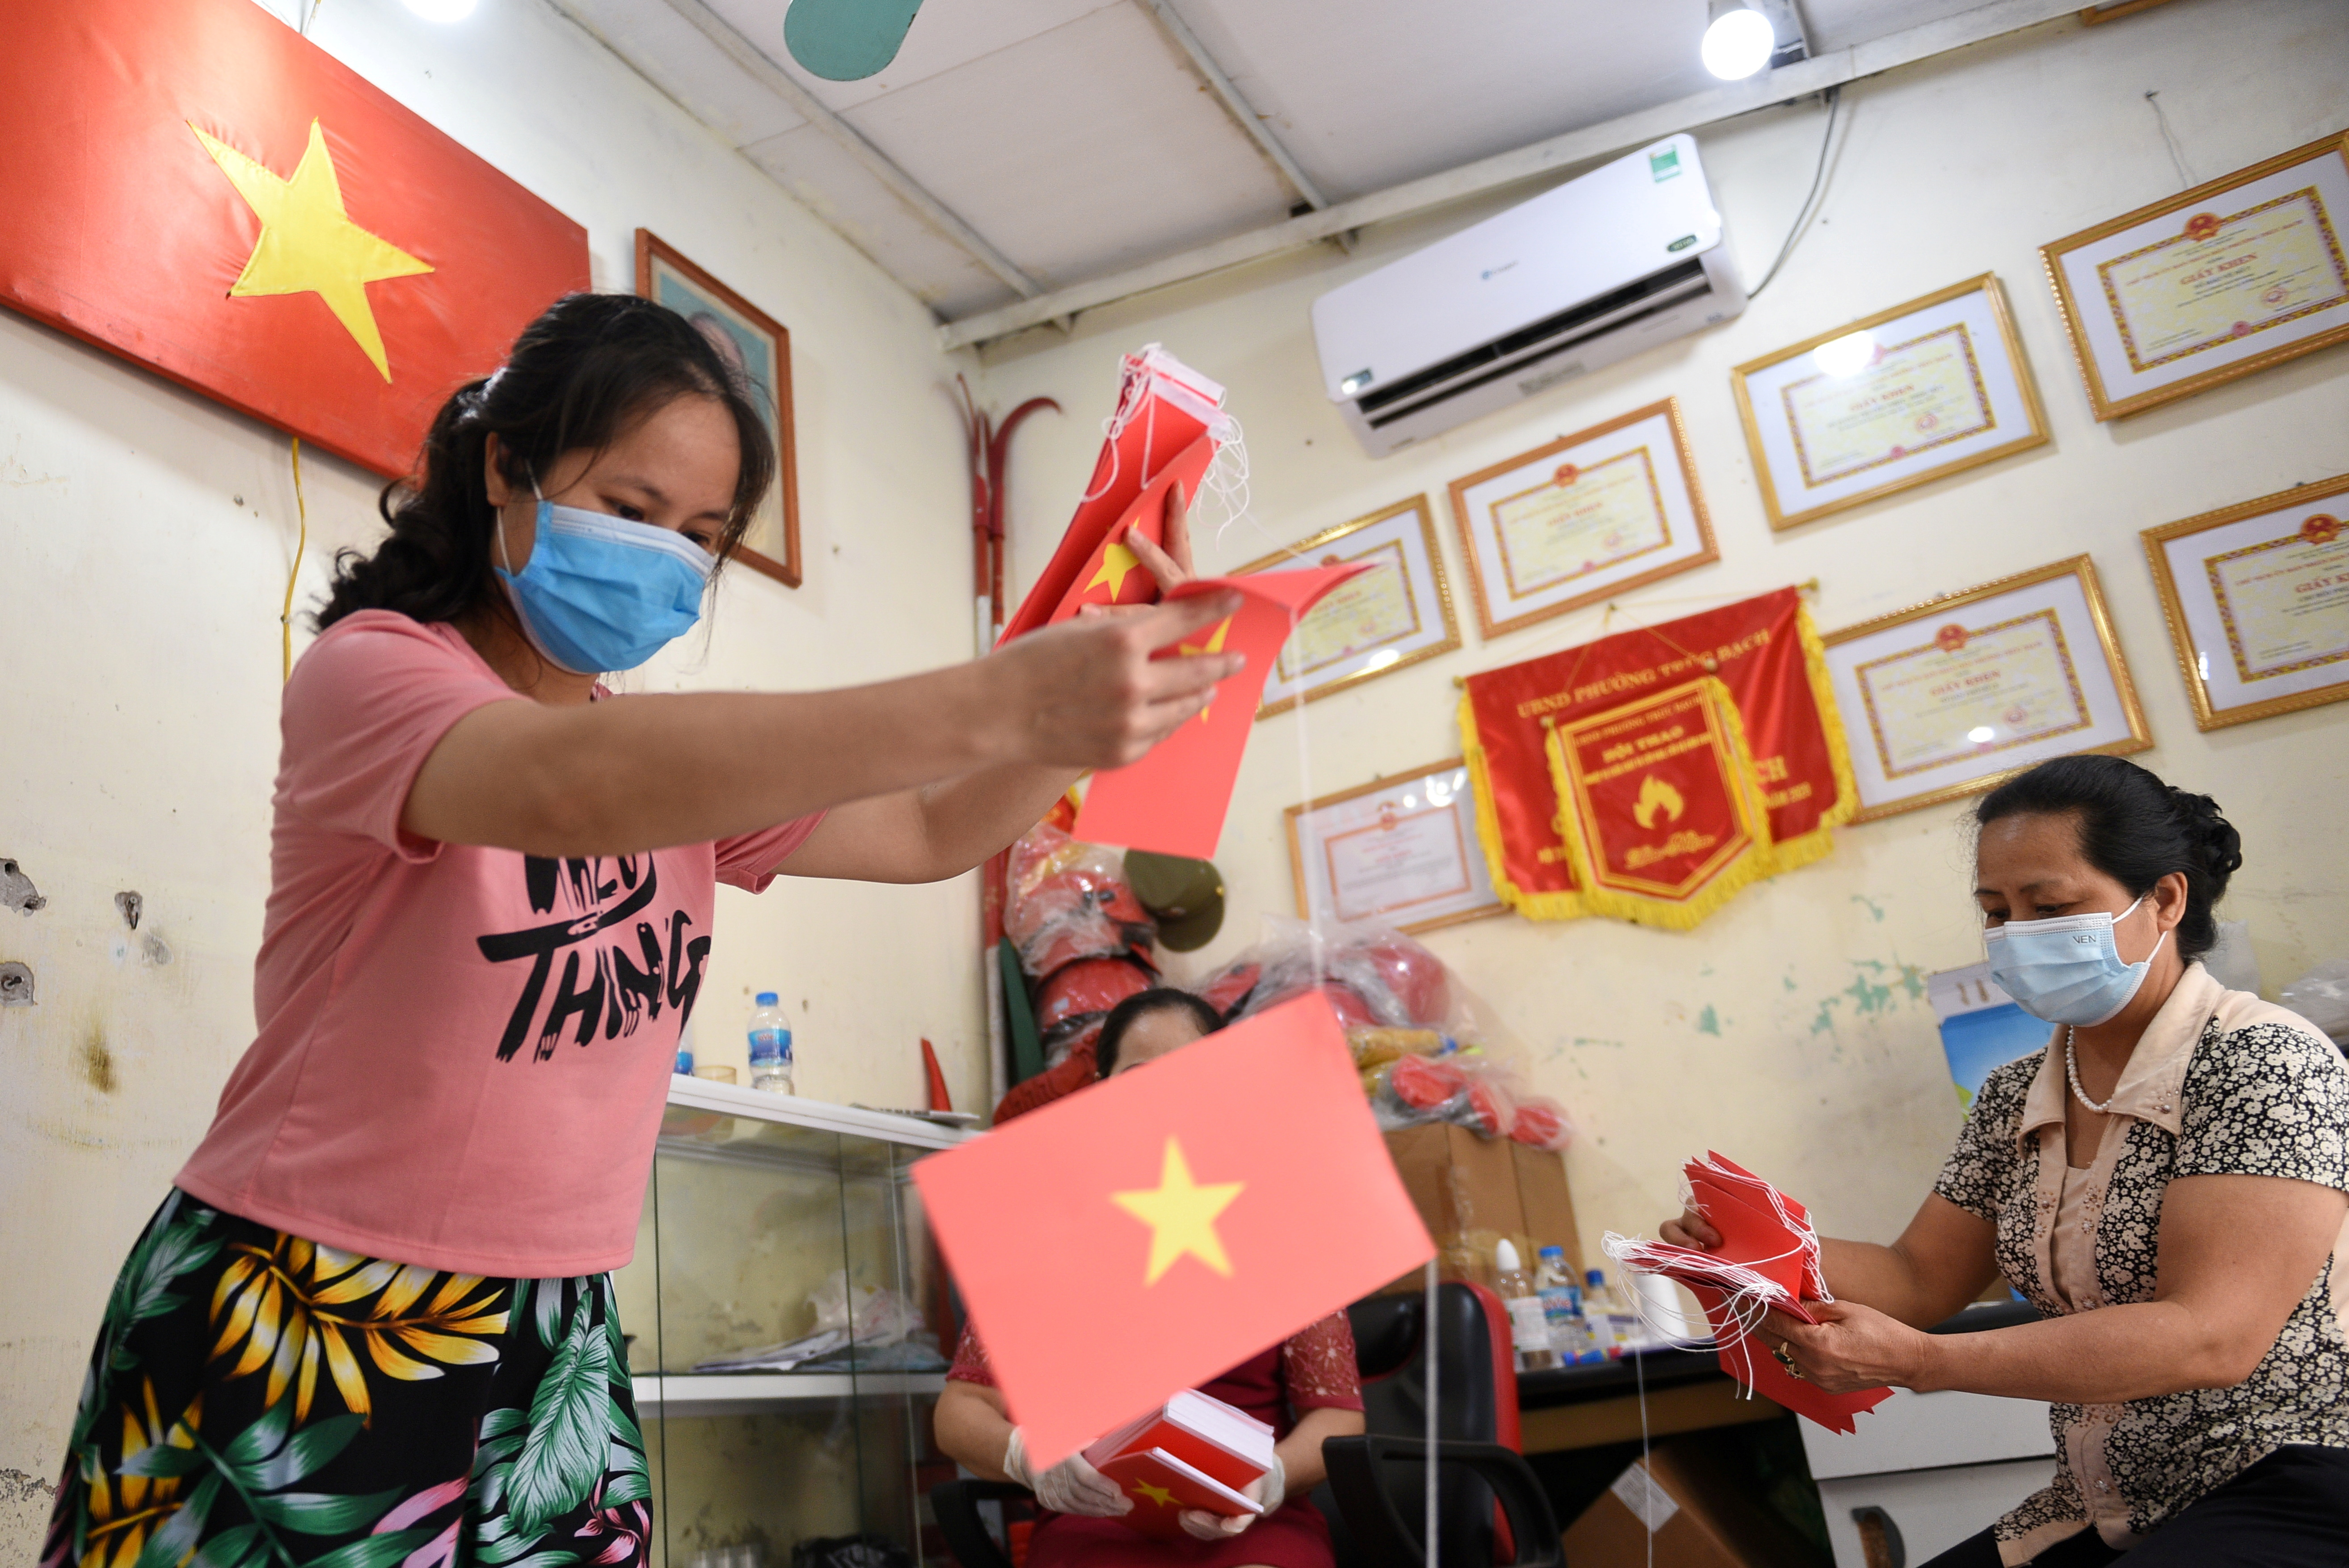 Local officials prepare a polling station ahead of upcoming elections in Hanoi, Vietnam, May 19, 2021. REUTERS/Thanh Hue/File Photo